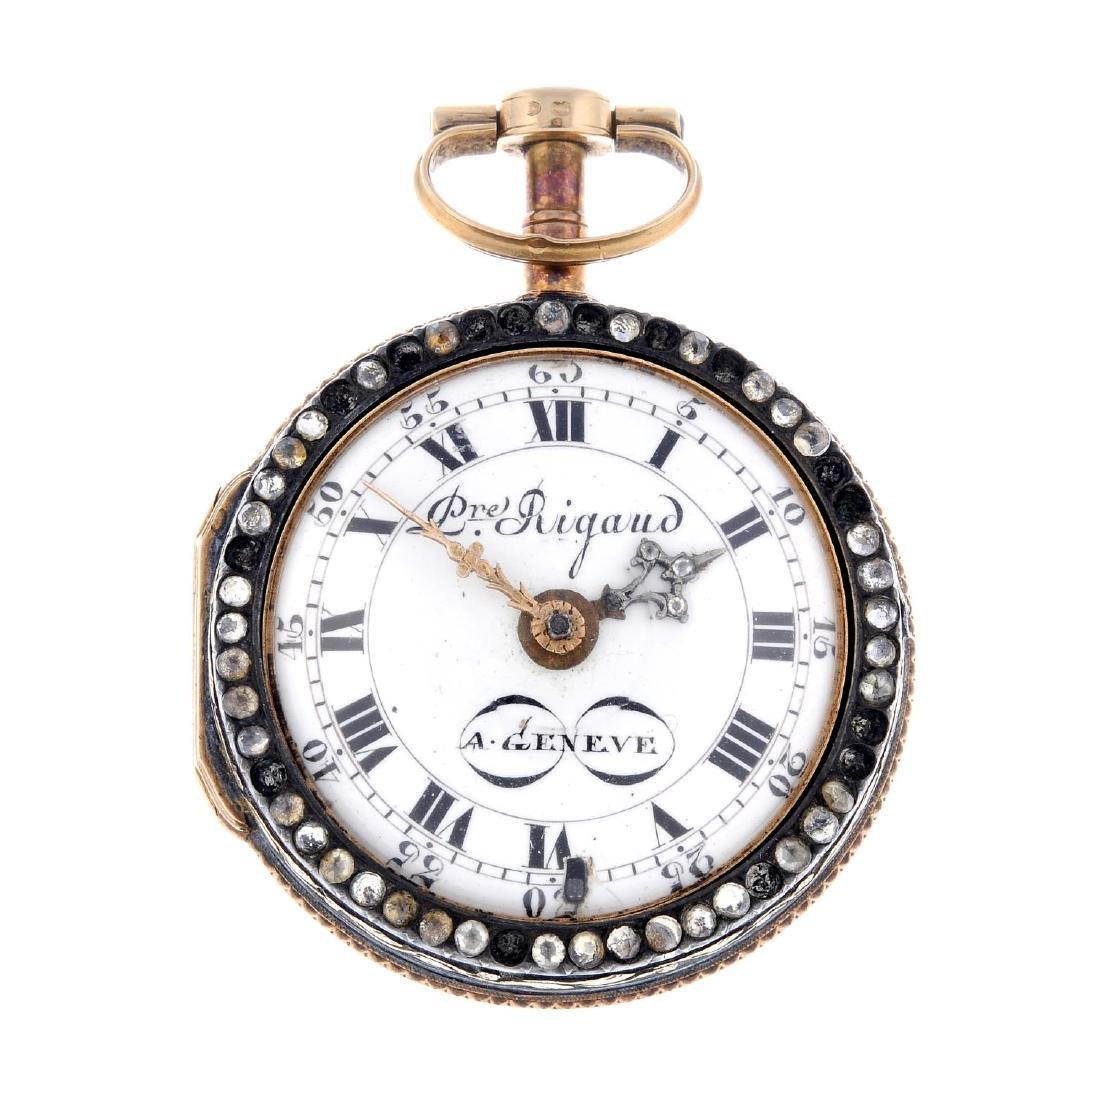 A pair case pocket watch by Rigaud. Yellow metal cases,